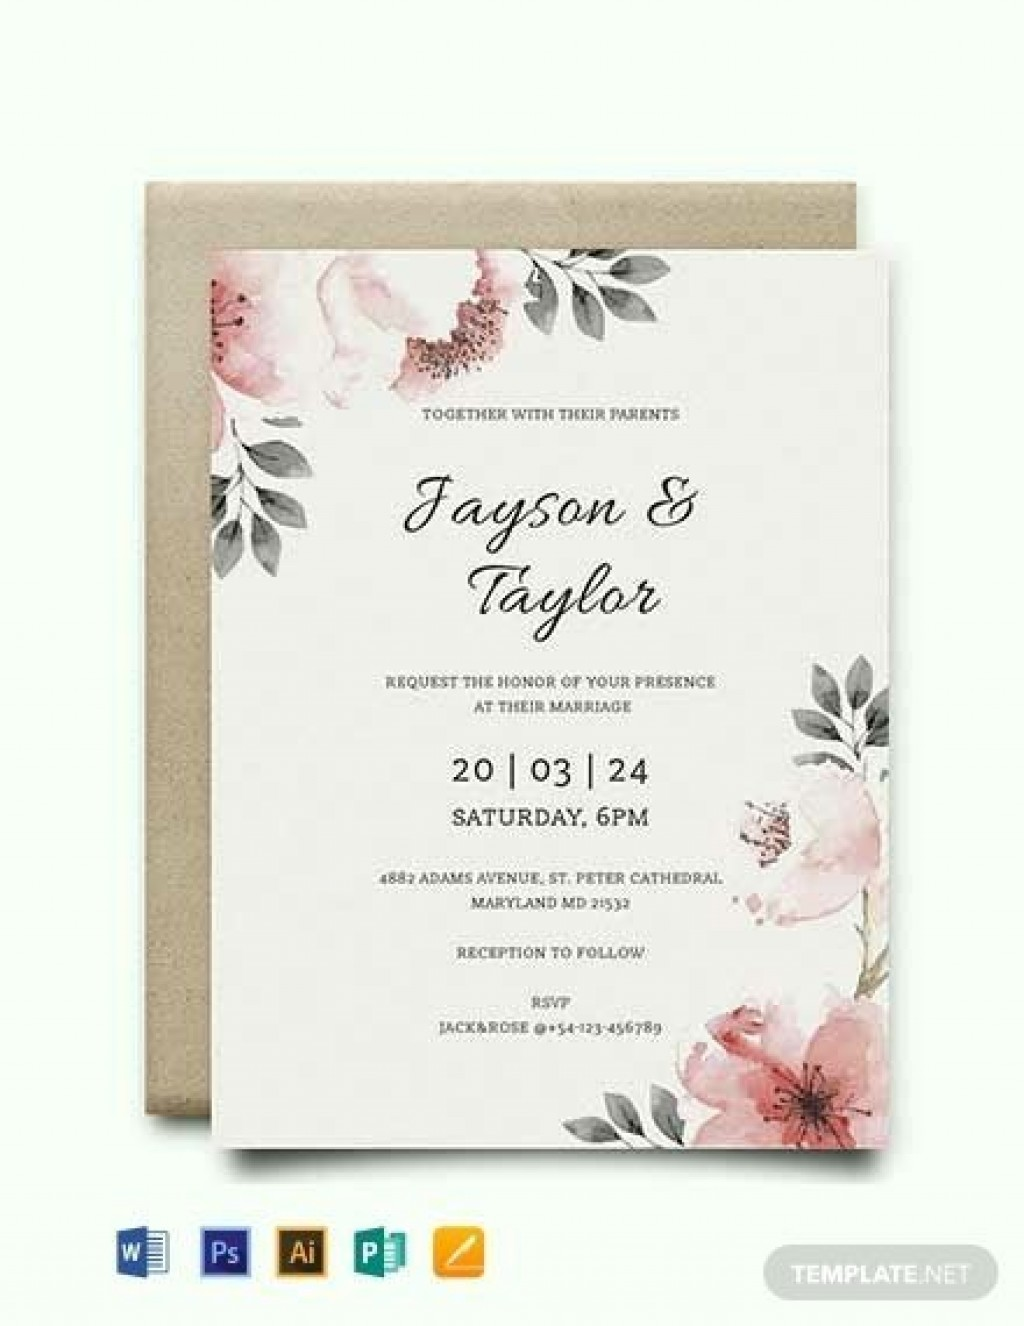 000 Striking Free Download Marriage Invitation Template Example  Card Design Psd After EffectLarge